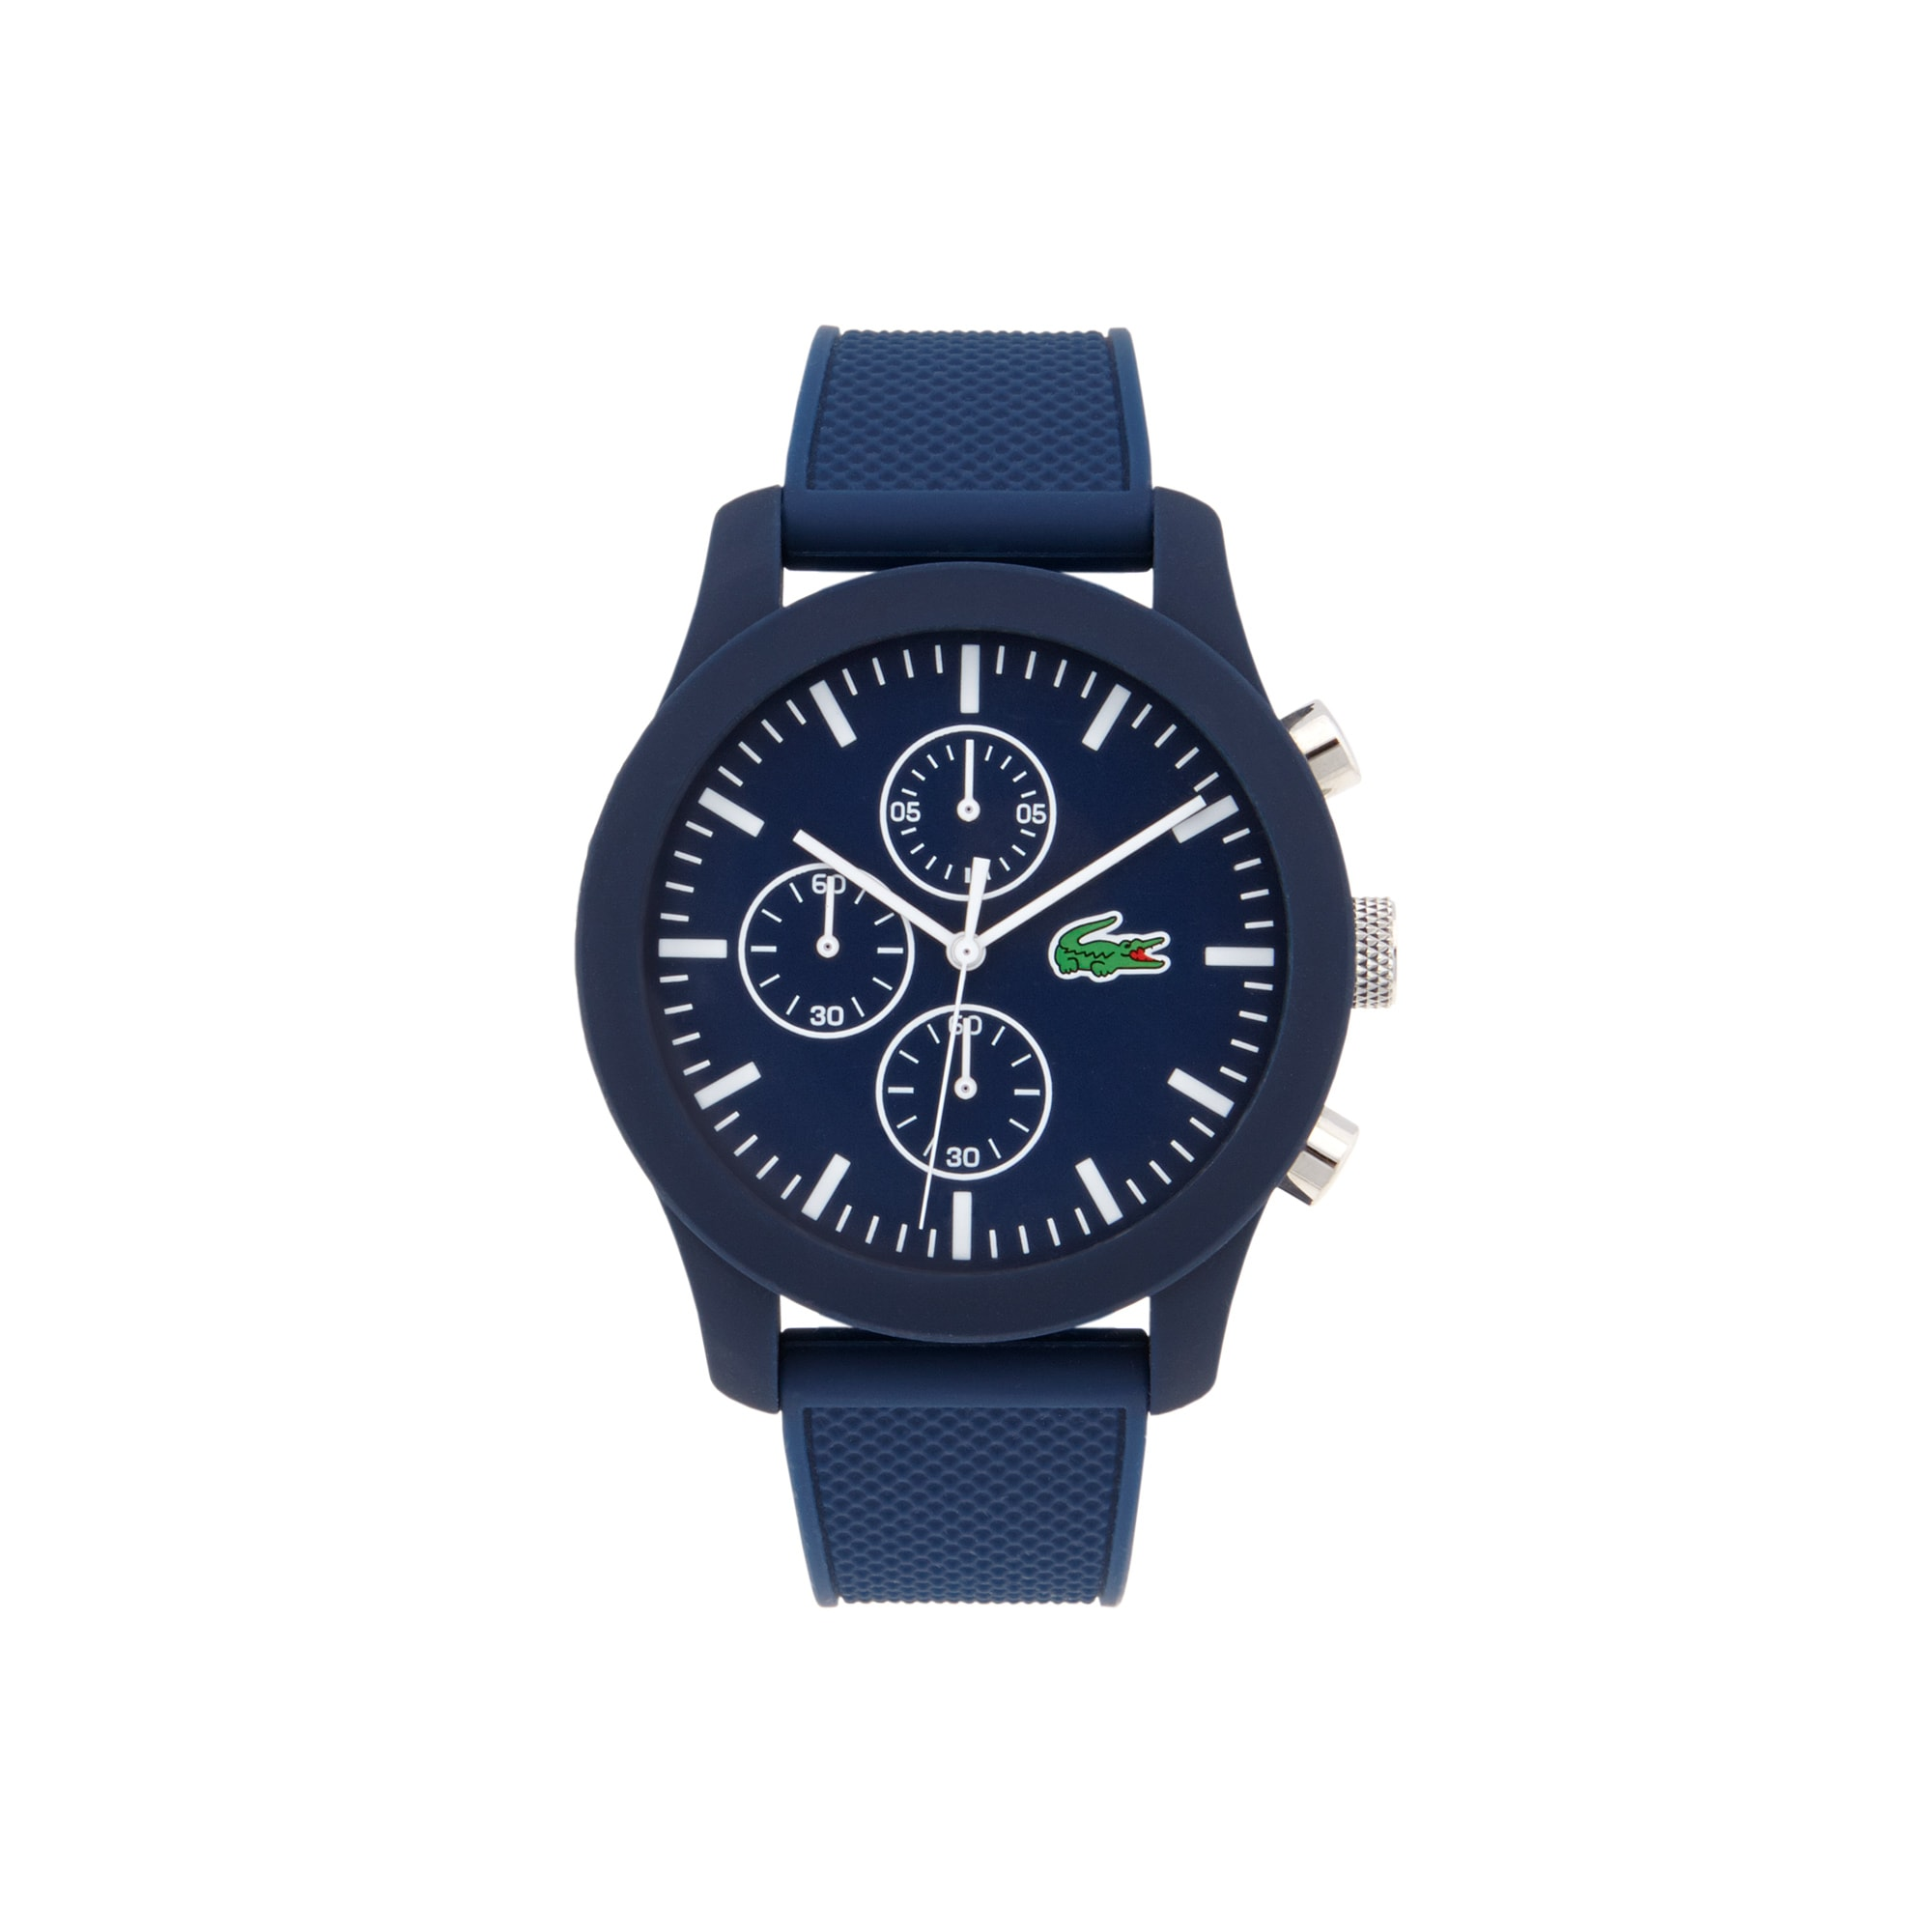 Lacoste.12.12 chronograph watch with blue silicone strap